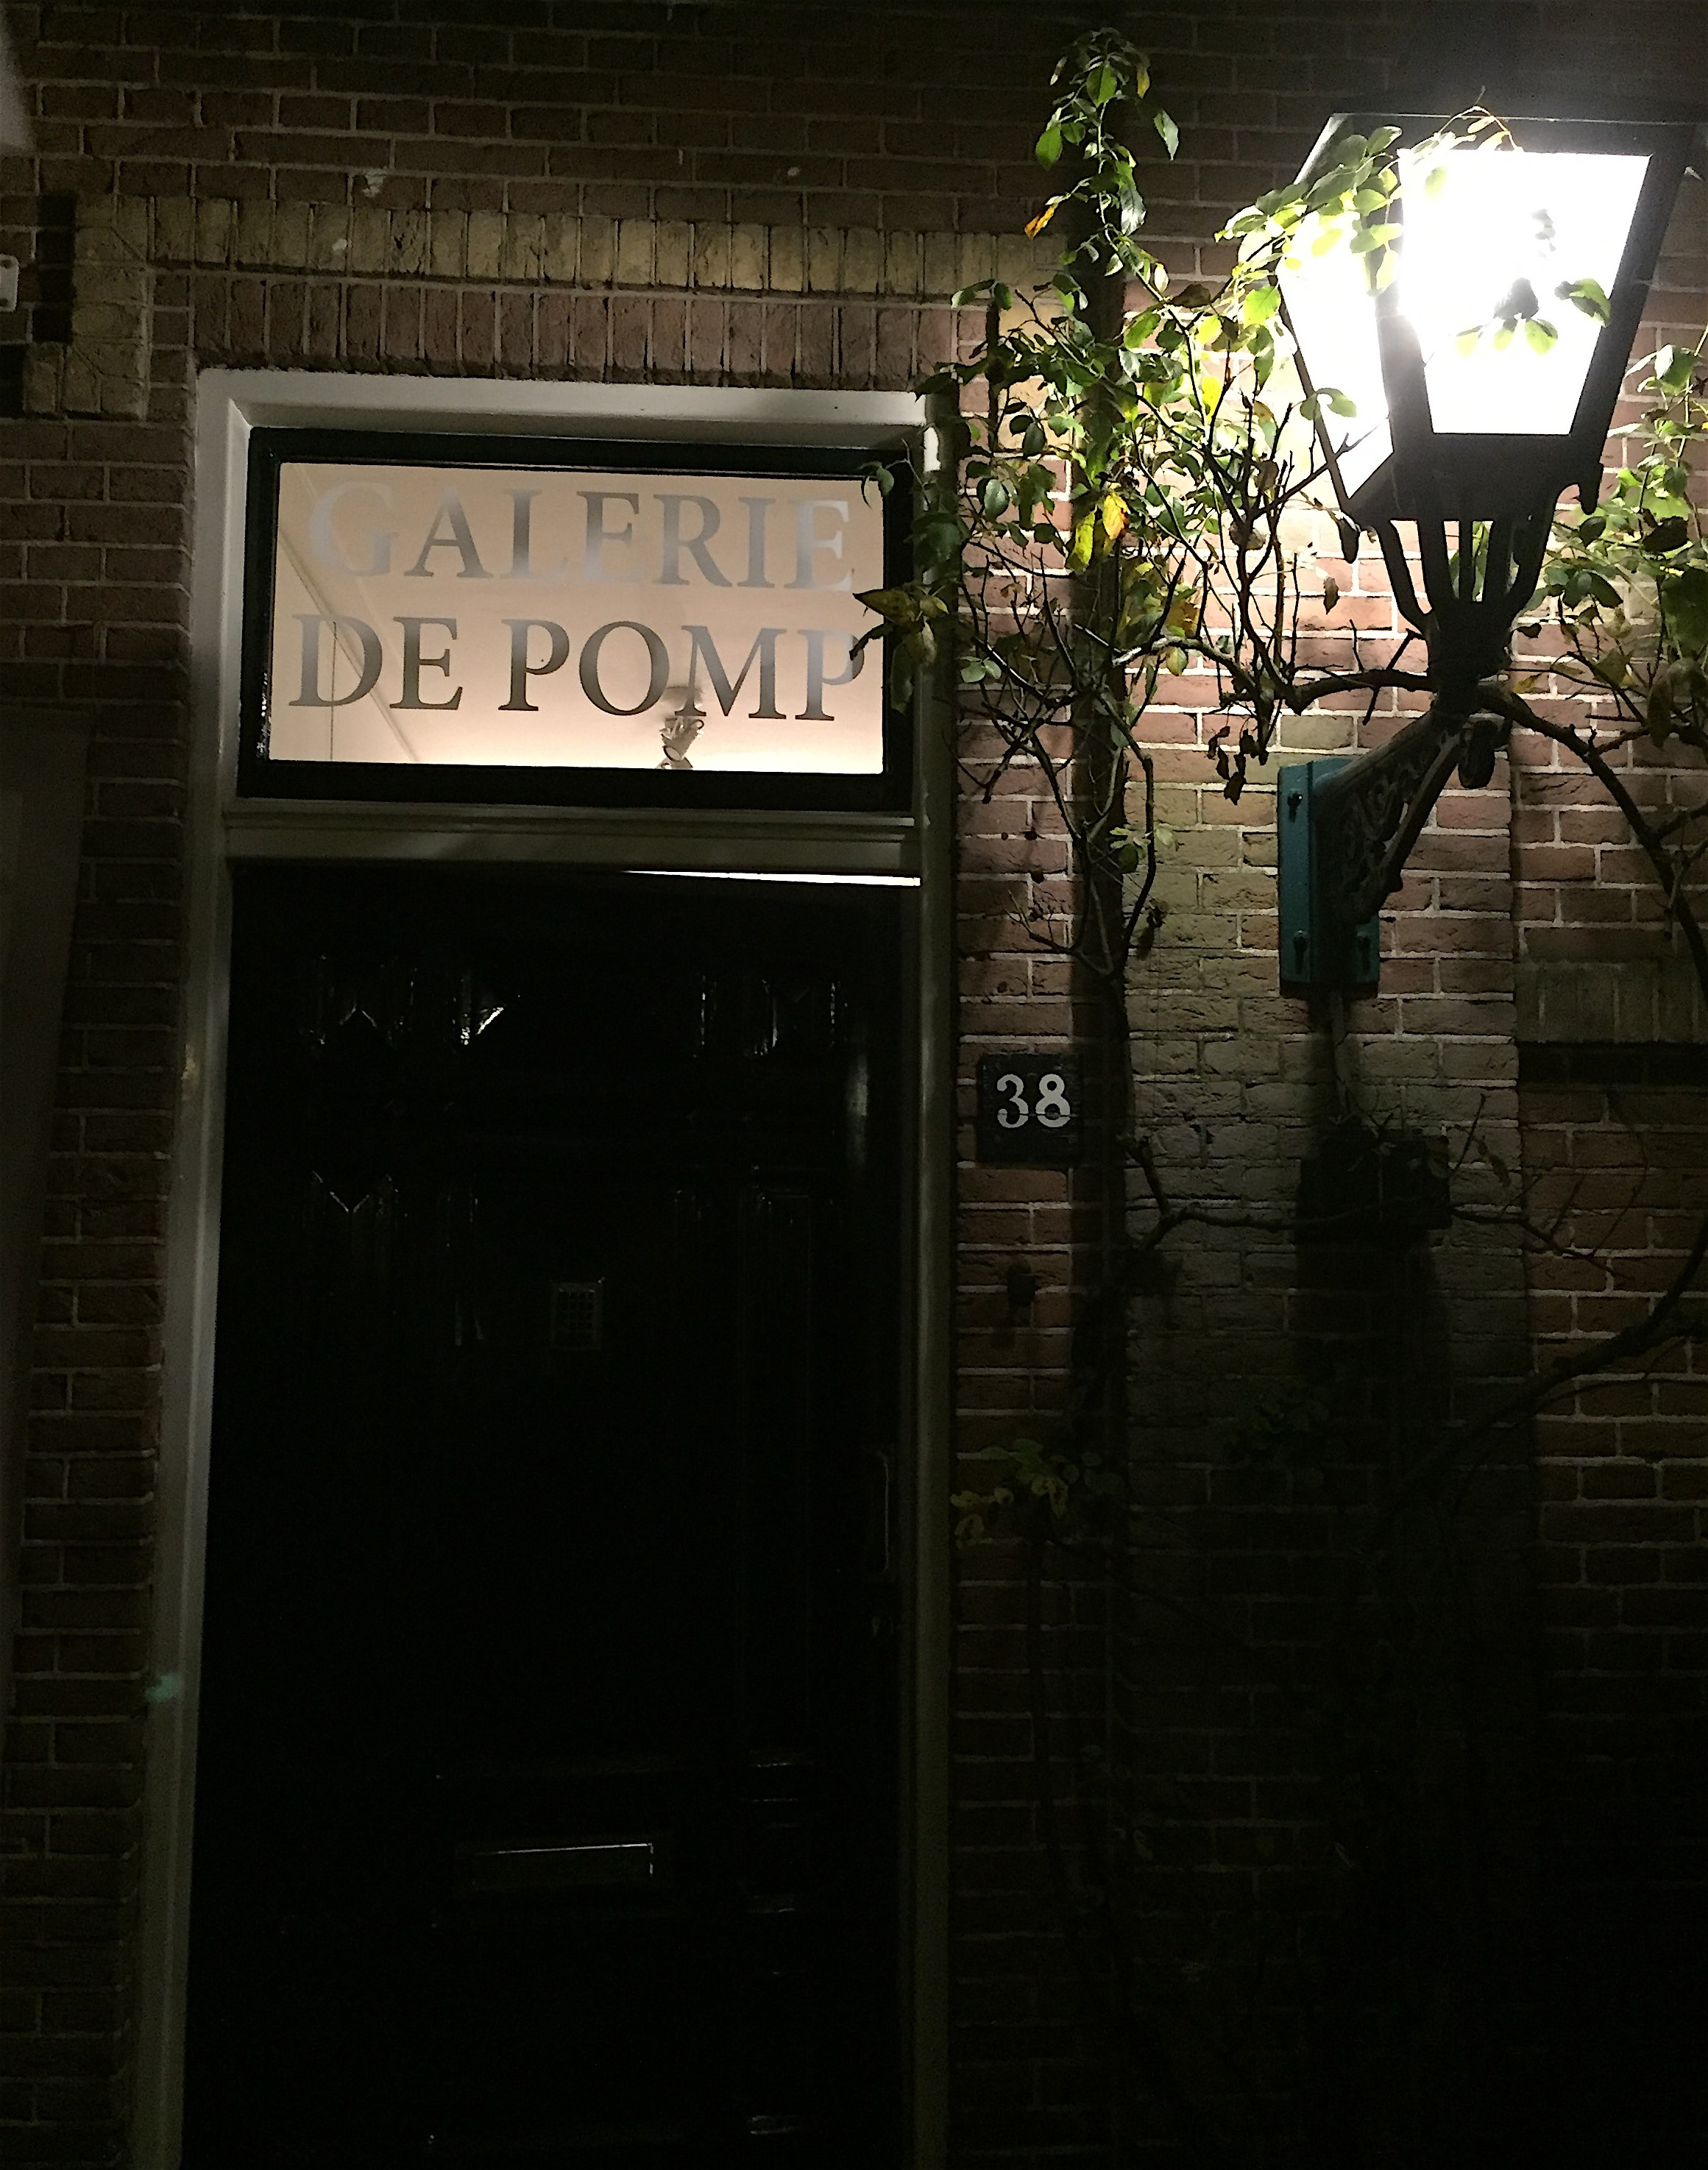 The entrance by night.